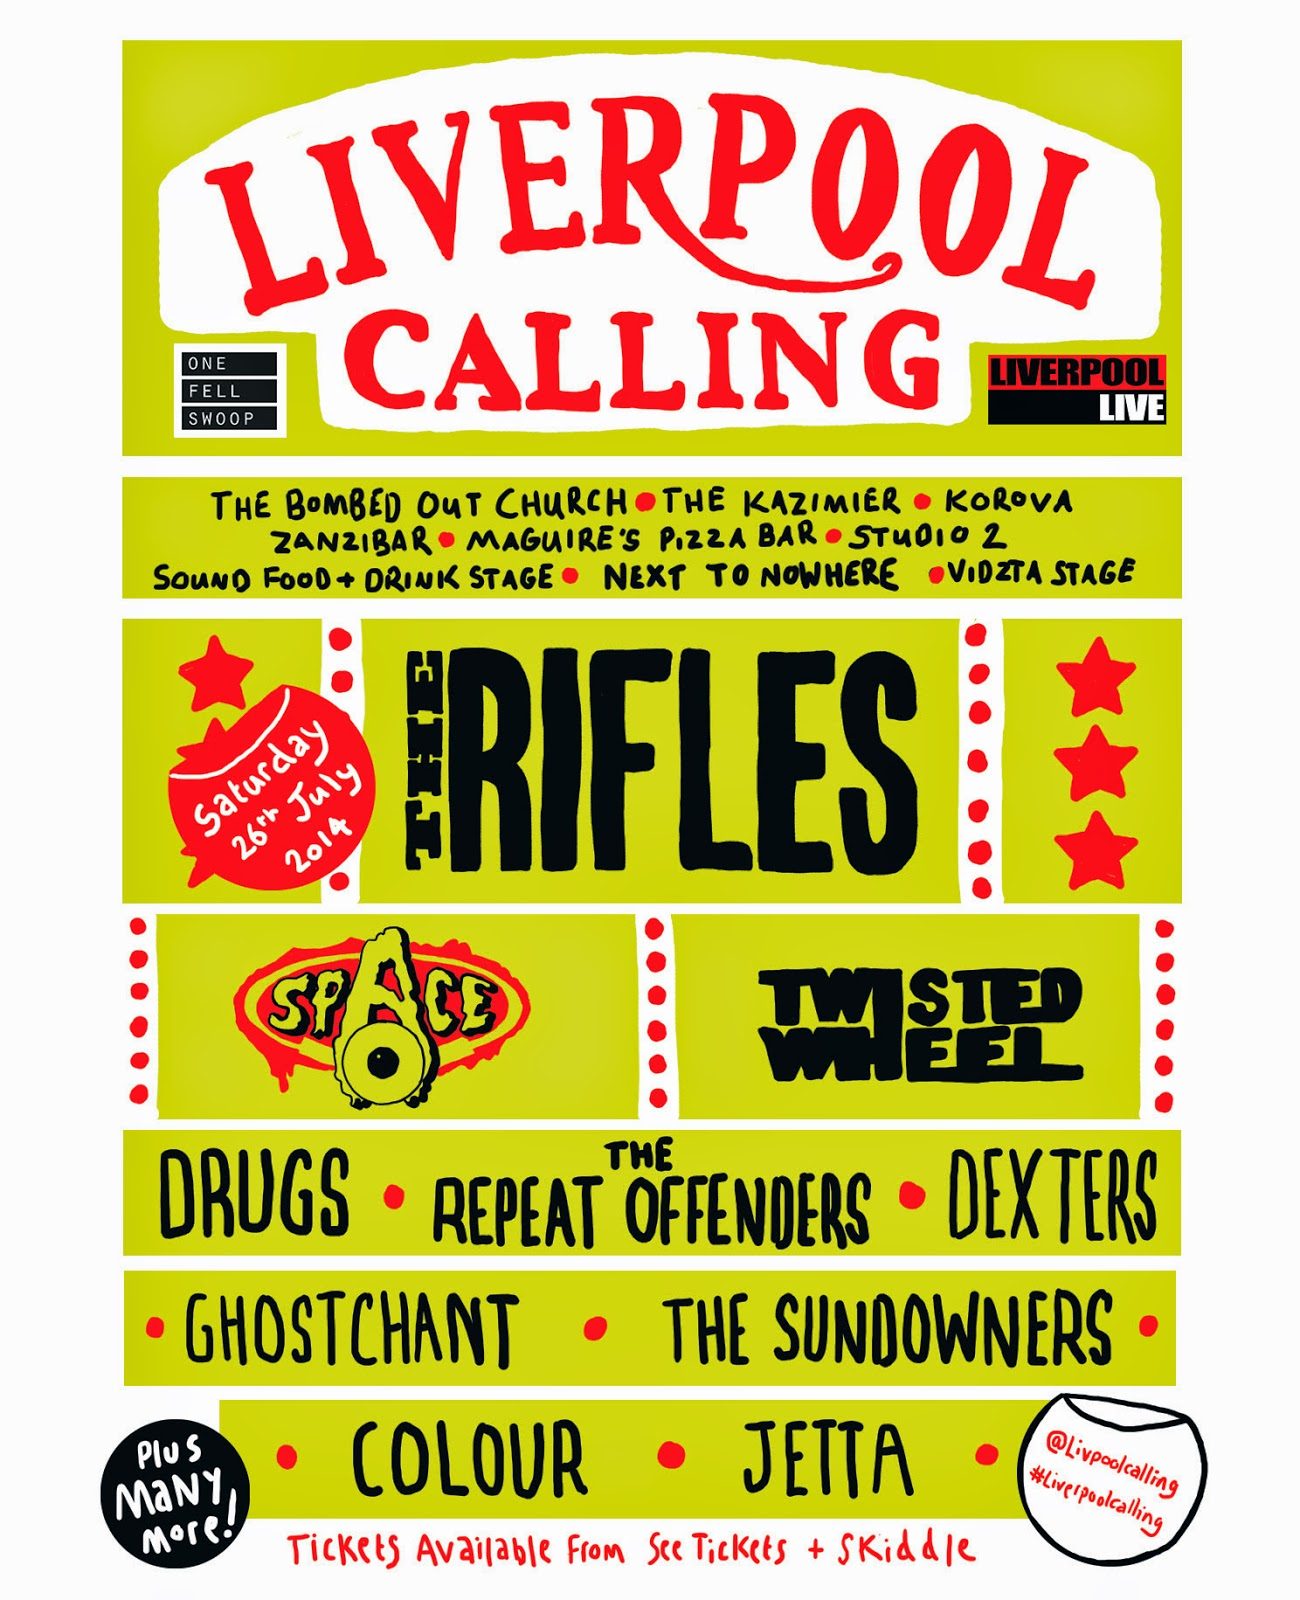 Liverpool calling 2014 - The Kazimer review